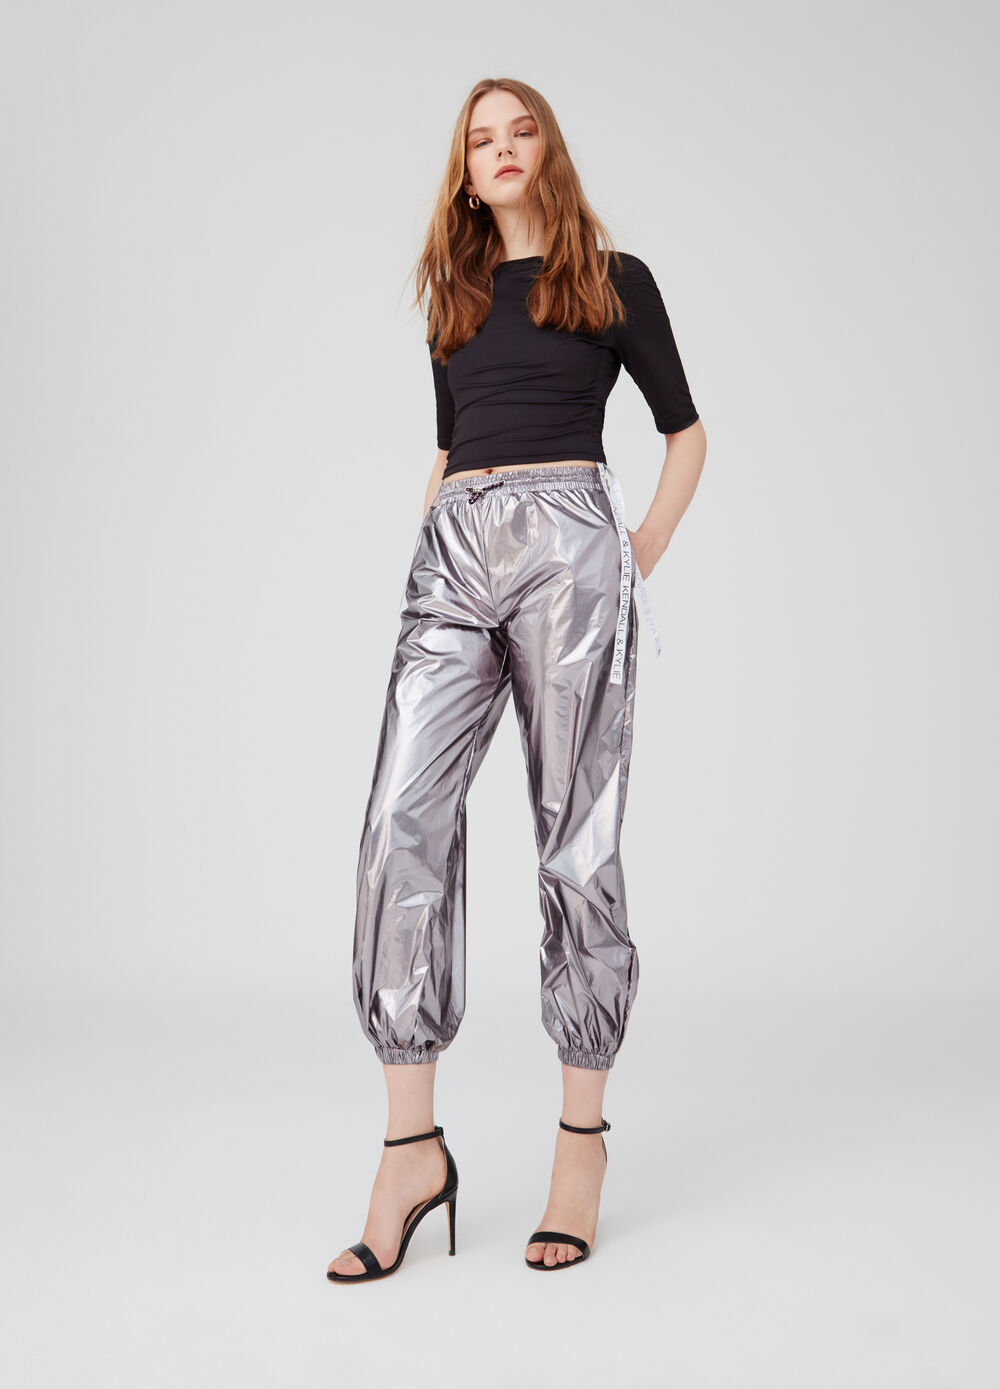 K+K for OVS cropped trousers with drawstring